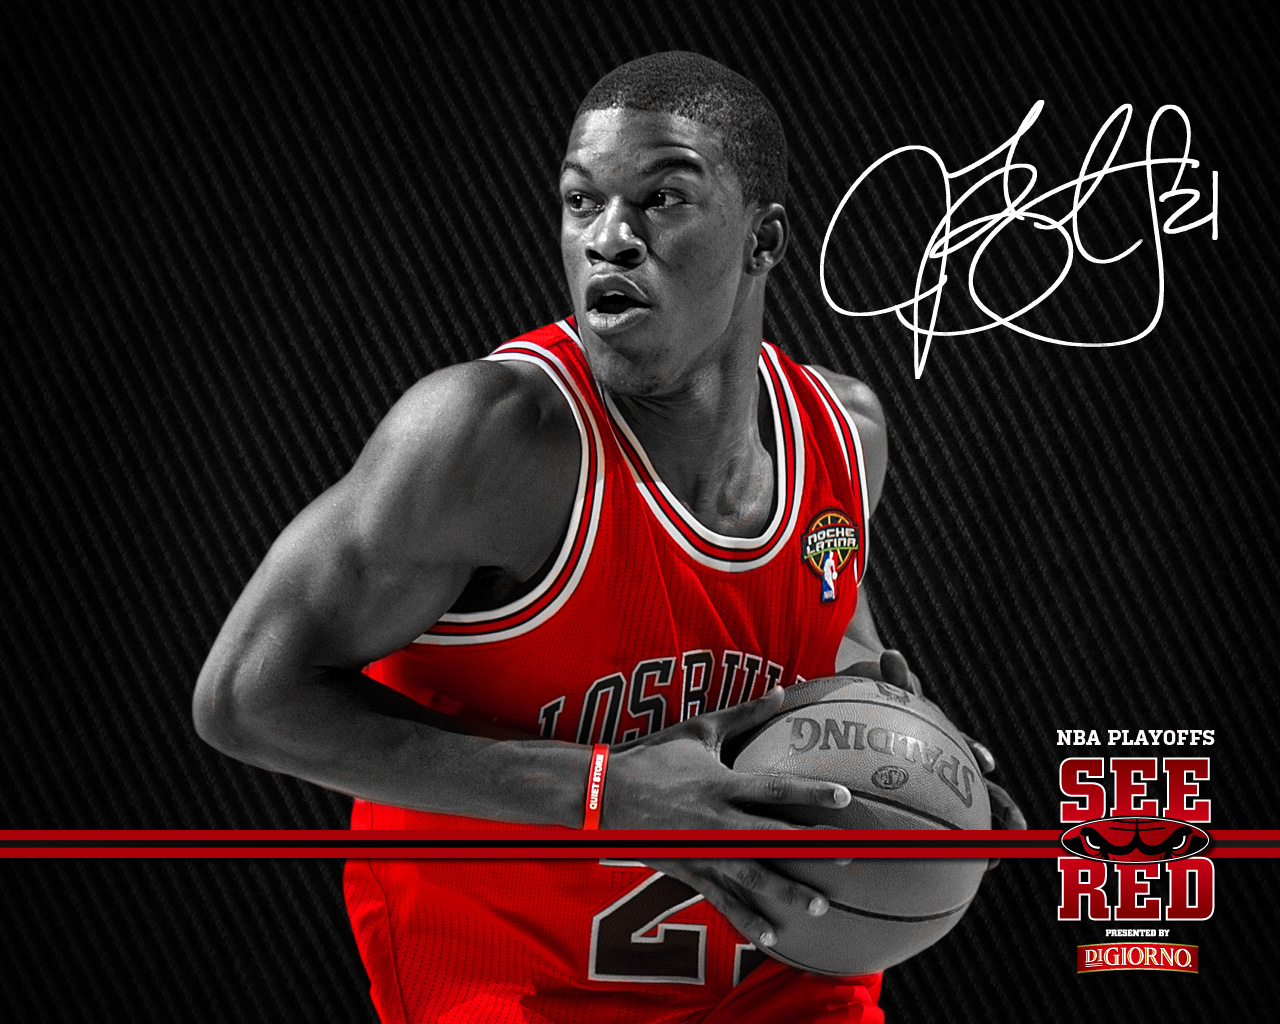 http://i.cdn.turner.com/nba/nba/.element/media/2.0/teamsites/bulls/wallpaper_1112/Butler_1280x1024.jpg